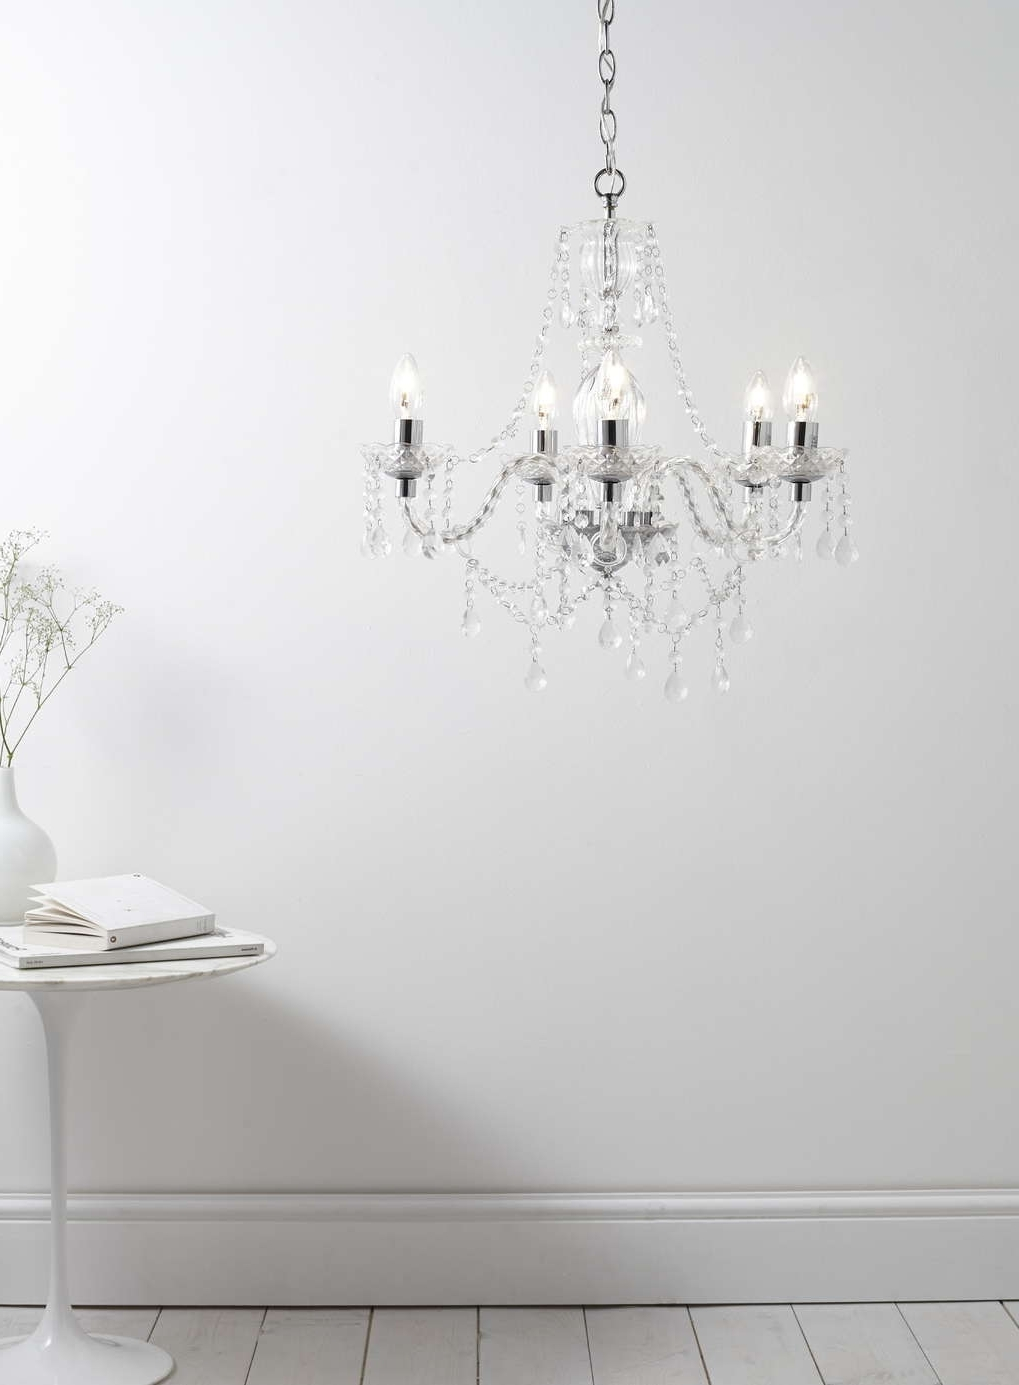 Bryony 5 Light Chandelier, Chrome – All Home & Lighting Sale – Sale Pertaining To Well Liked 7 Light Chandeliers (View 15 of 20)